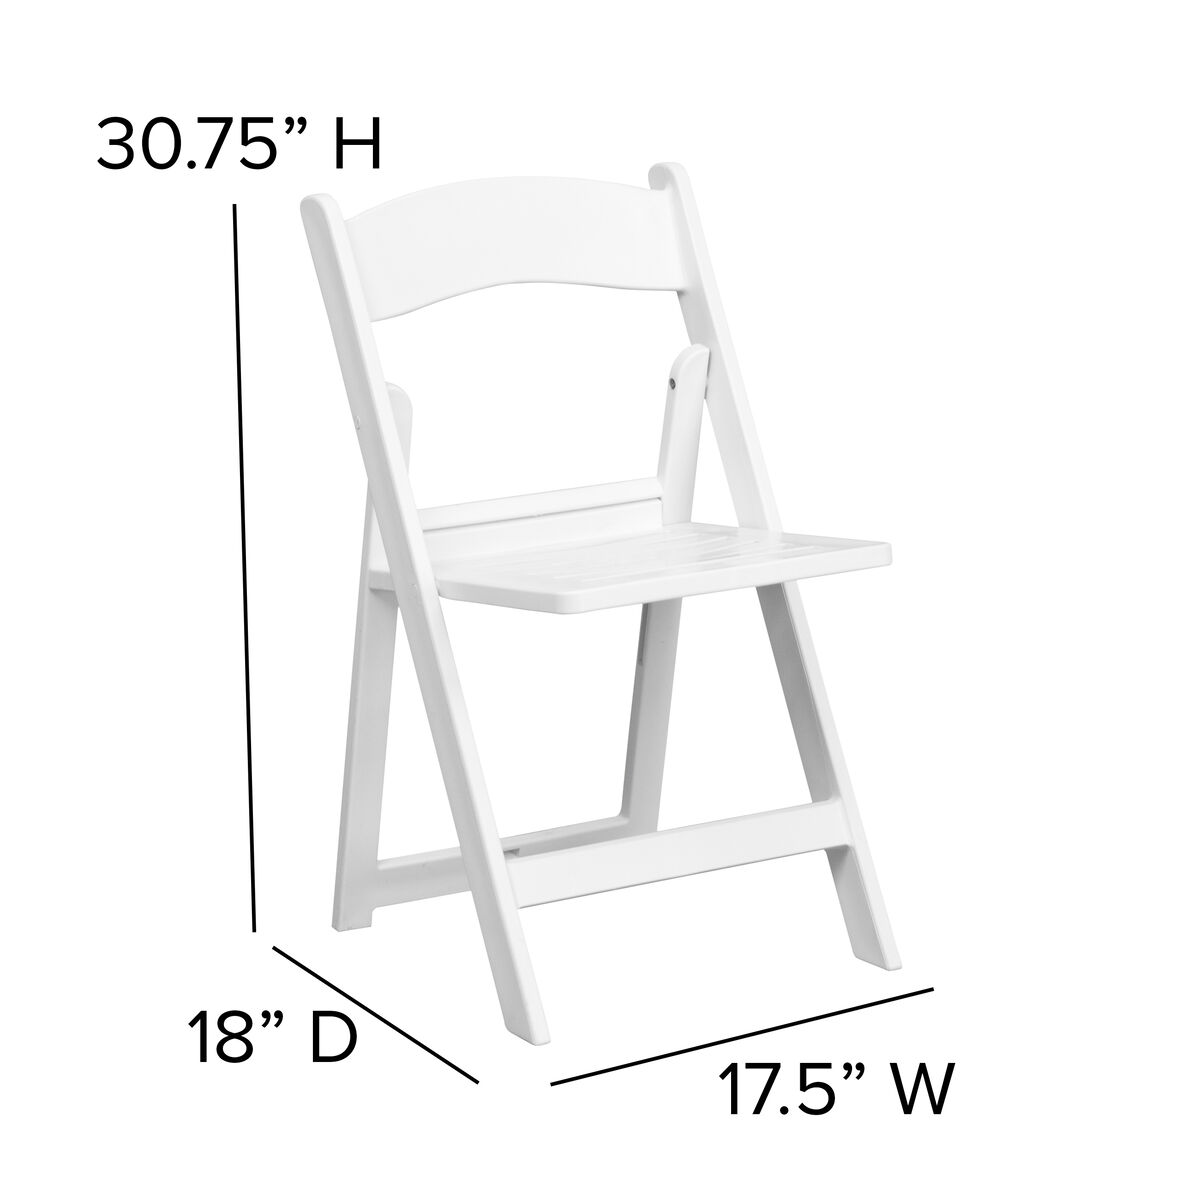 Strange Hercules Series 1000 Lb Capacity White Resin Folding Chair With Slatted Seat Caraccident5 Cool Chair Designs And Ideas Caraccident5Info